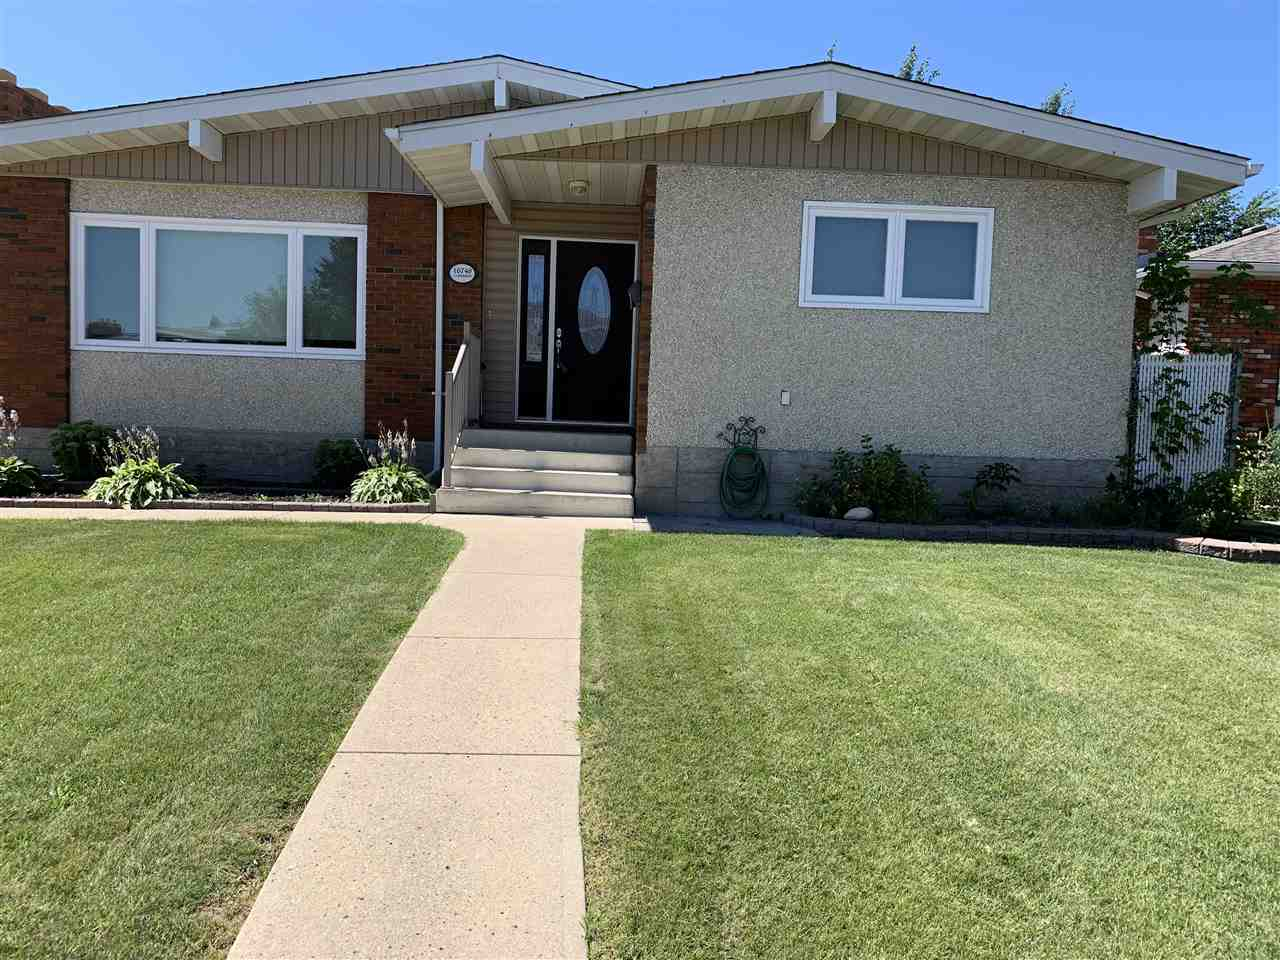 What a beautiful bungalow in Baturyn! Pride of ownership, original owners. With almost 1300 SF of living area on the main floor and a developed basement, there is no reason to look any further. There have been many updates to the home including vinyl windows and doors (2016), new asphalt shingles (2016), and new custom blinds (2018). As you enter the home you will notice the newer hardwood flooring and ceramic tile. No carpet on the main floor. There are 3 spacious bedrooms and the master boasts a 2 piece ensuite. The kitchen has plenty of counter space and a gas stove. Great for the hidden chef in all of us. As an added bonus the laundry room is upstairs. The basement is fully developed and contains a large bedroom, 2 piece bathroom (the ability to add a shower is there), another laundry room, family room and a small area that can be used as a kitchen. The backyard is huge and features an oversized detached garage (24x26) and a huge garden. Come see what the fuss is all about. Baturyn at it's best.